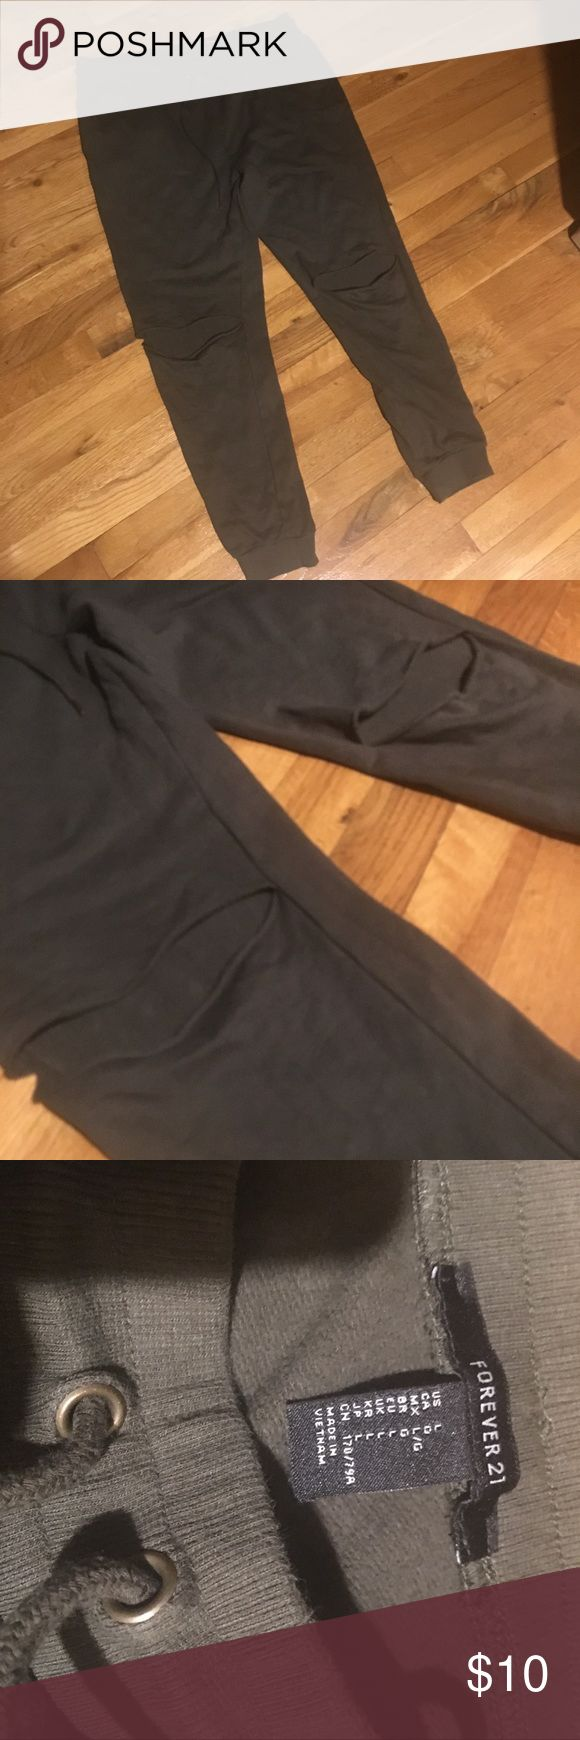 F21 Army Green Sweatpants knees have cutouts, elastic waistband and drawstring, side pockets, left butt cheek has a stain (in photo) elastic by ankle Forever 21 Pants